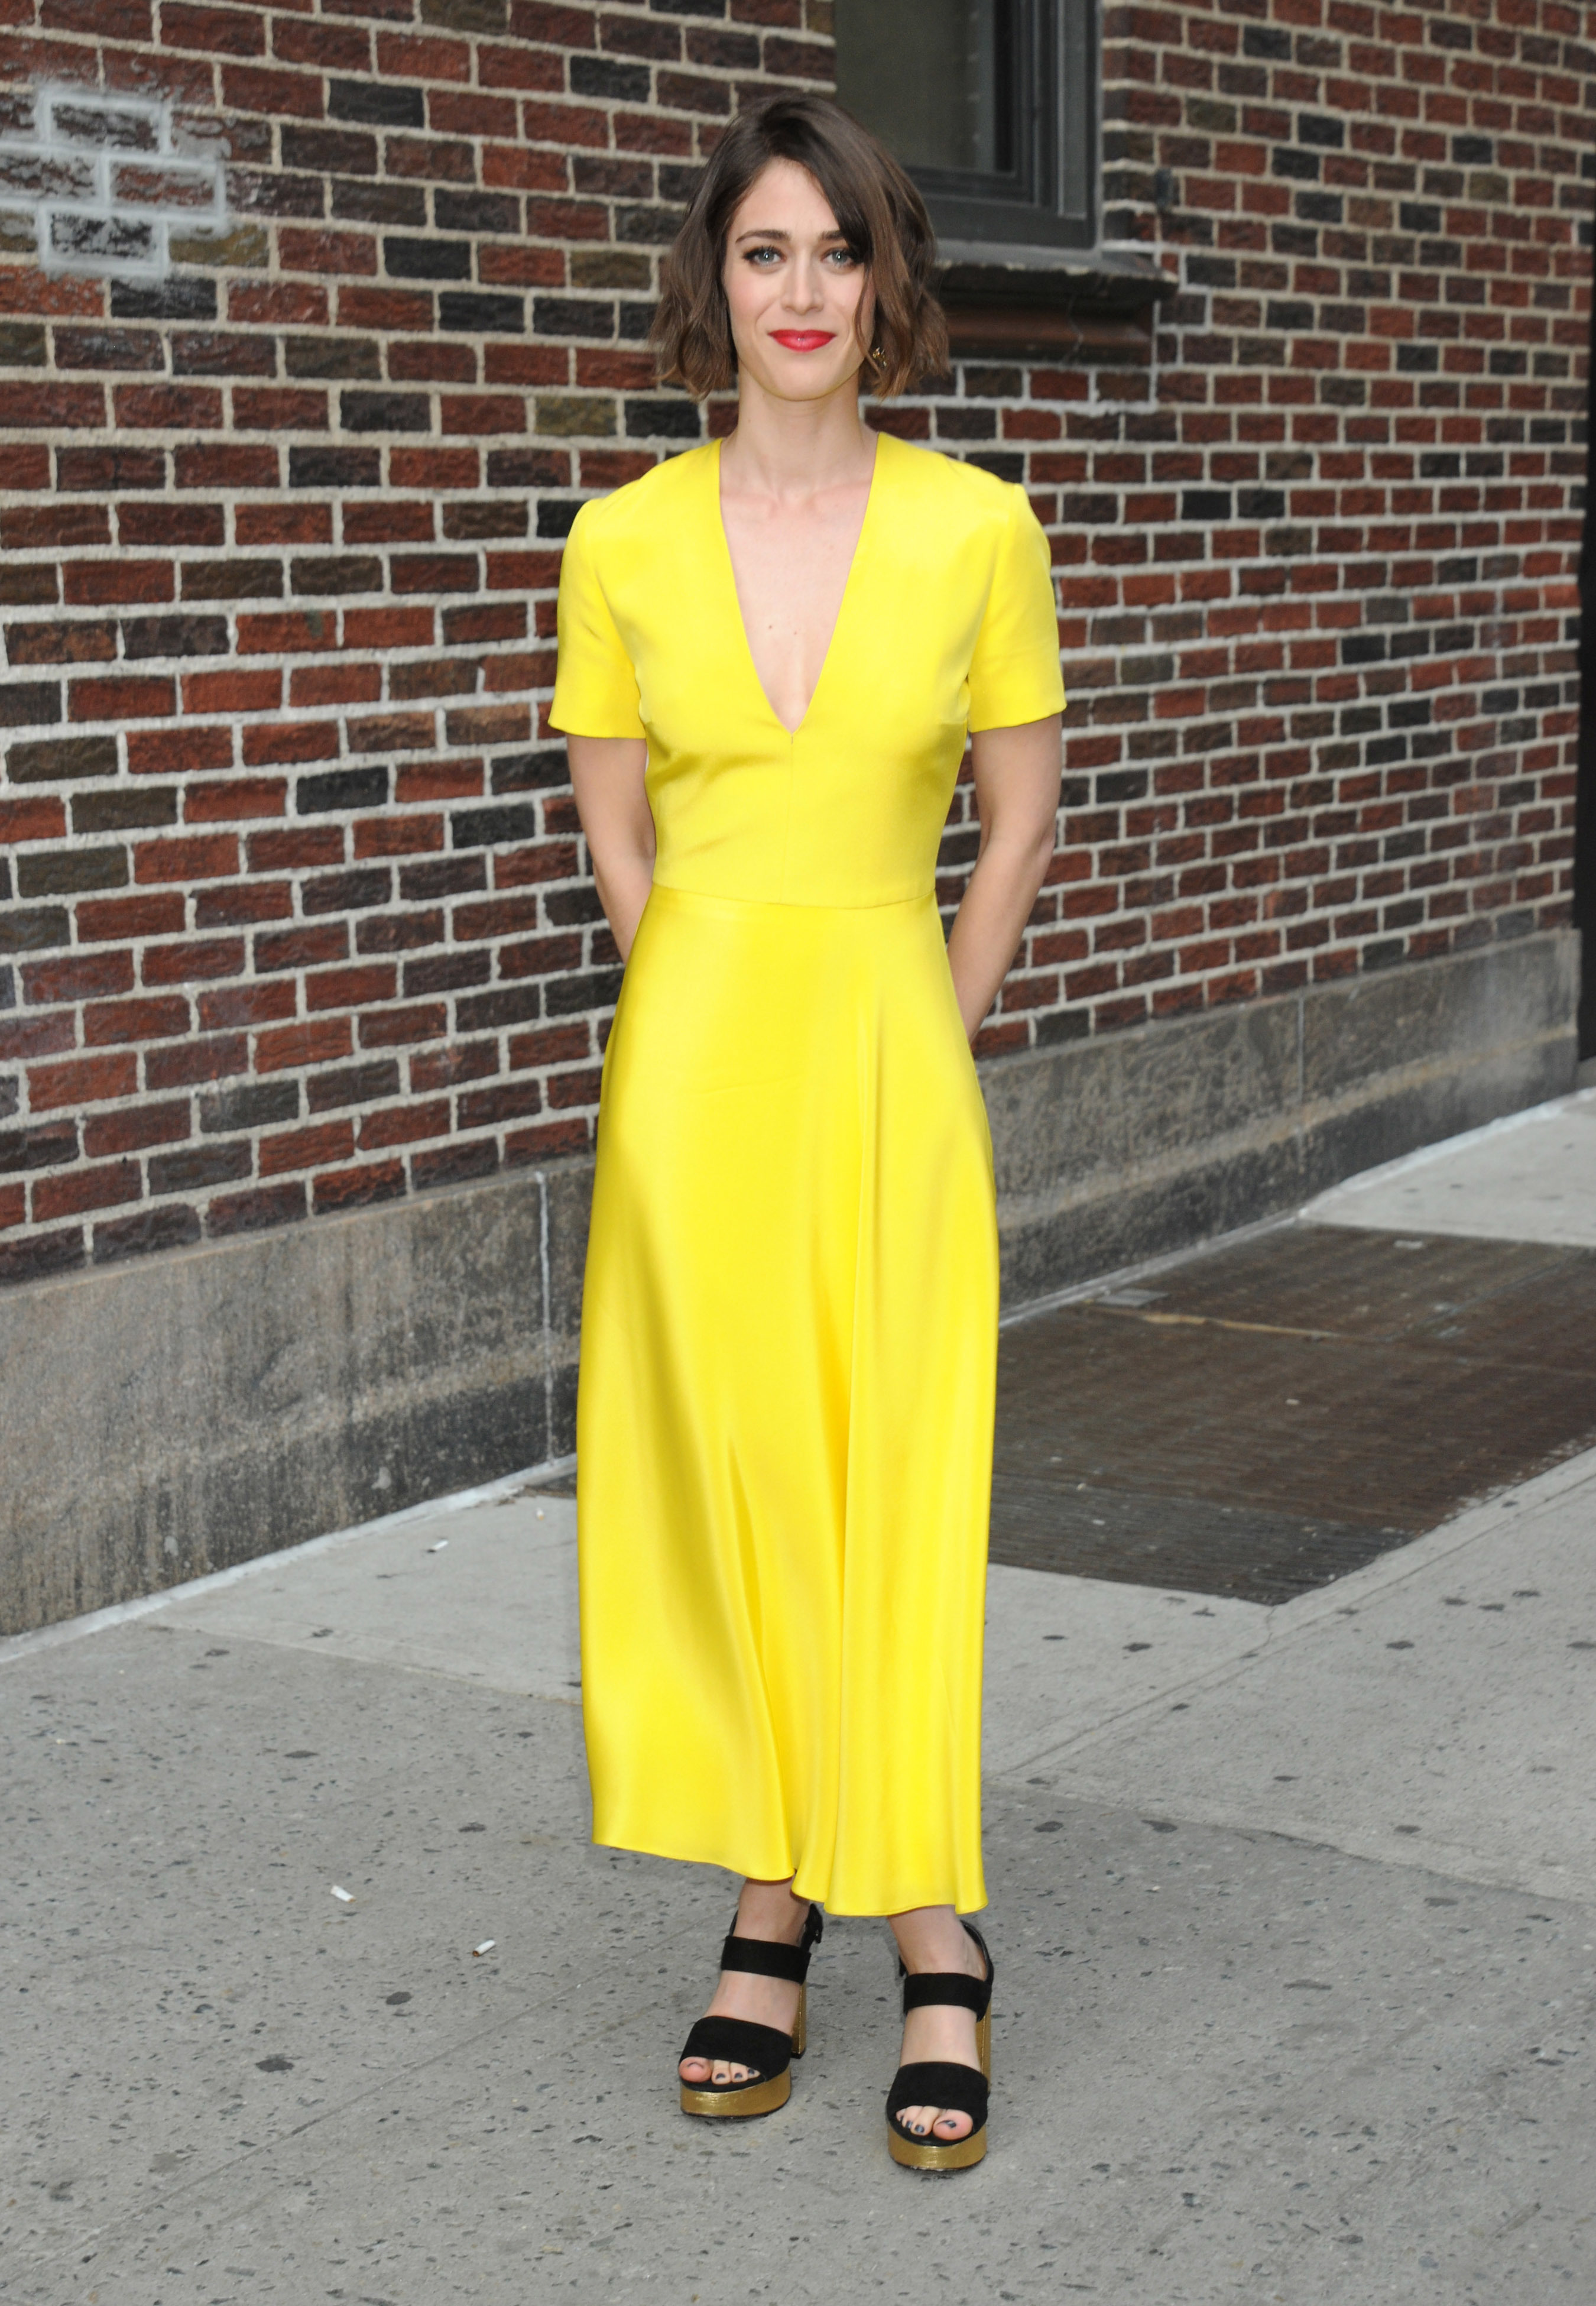 Lizzy Caplan takes issue with double standards in onscreen nudity